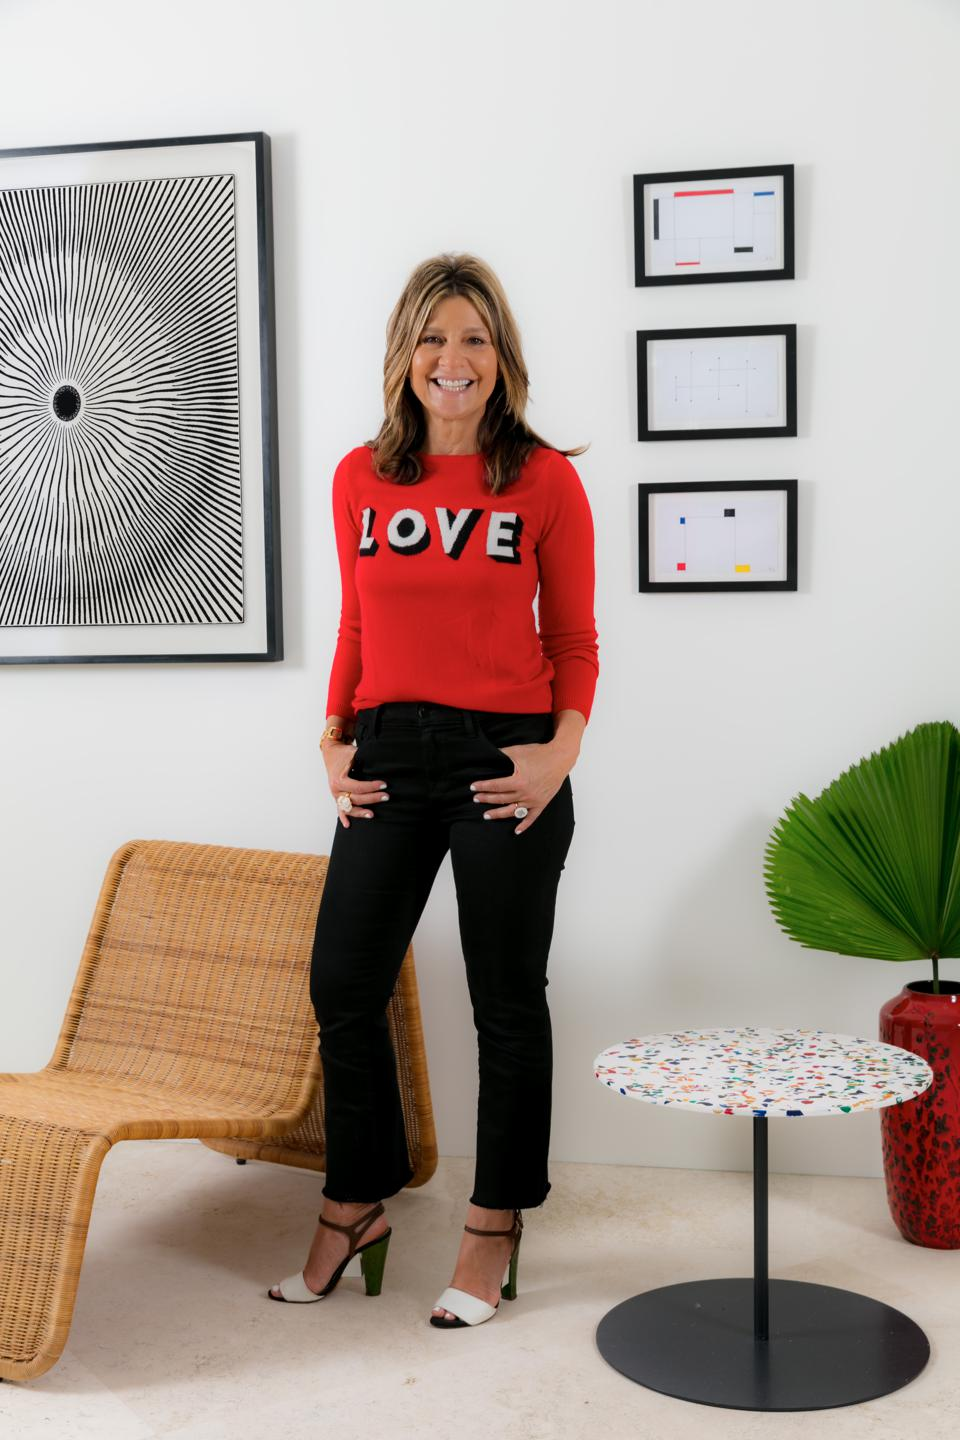 Fashion and interior designer Lisa Perry